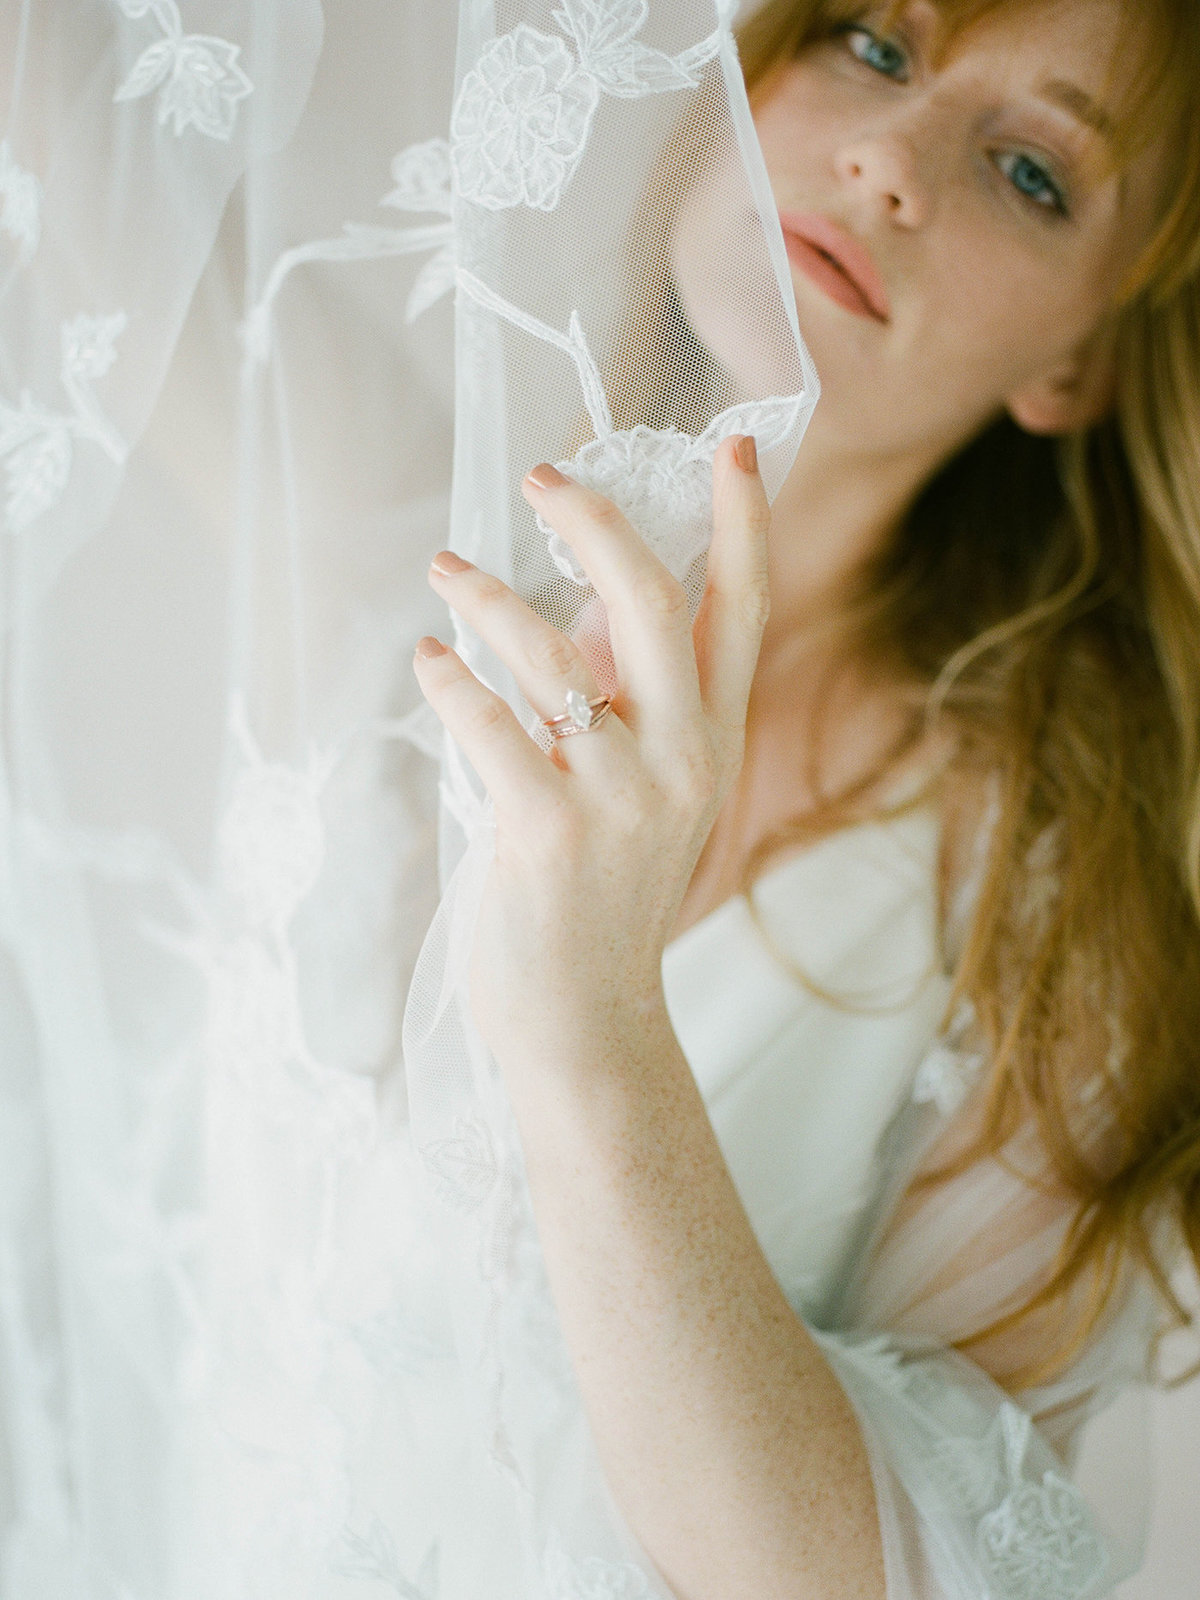 Fine Art Bridal Portraits - Sarah Sunstrom Photography - Film Wedding Photographer - 10